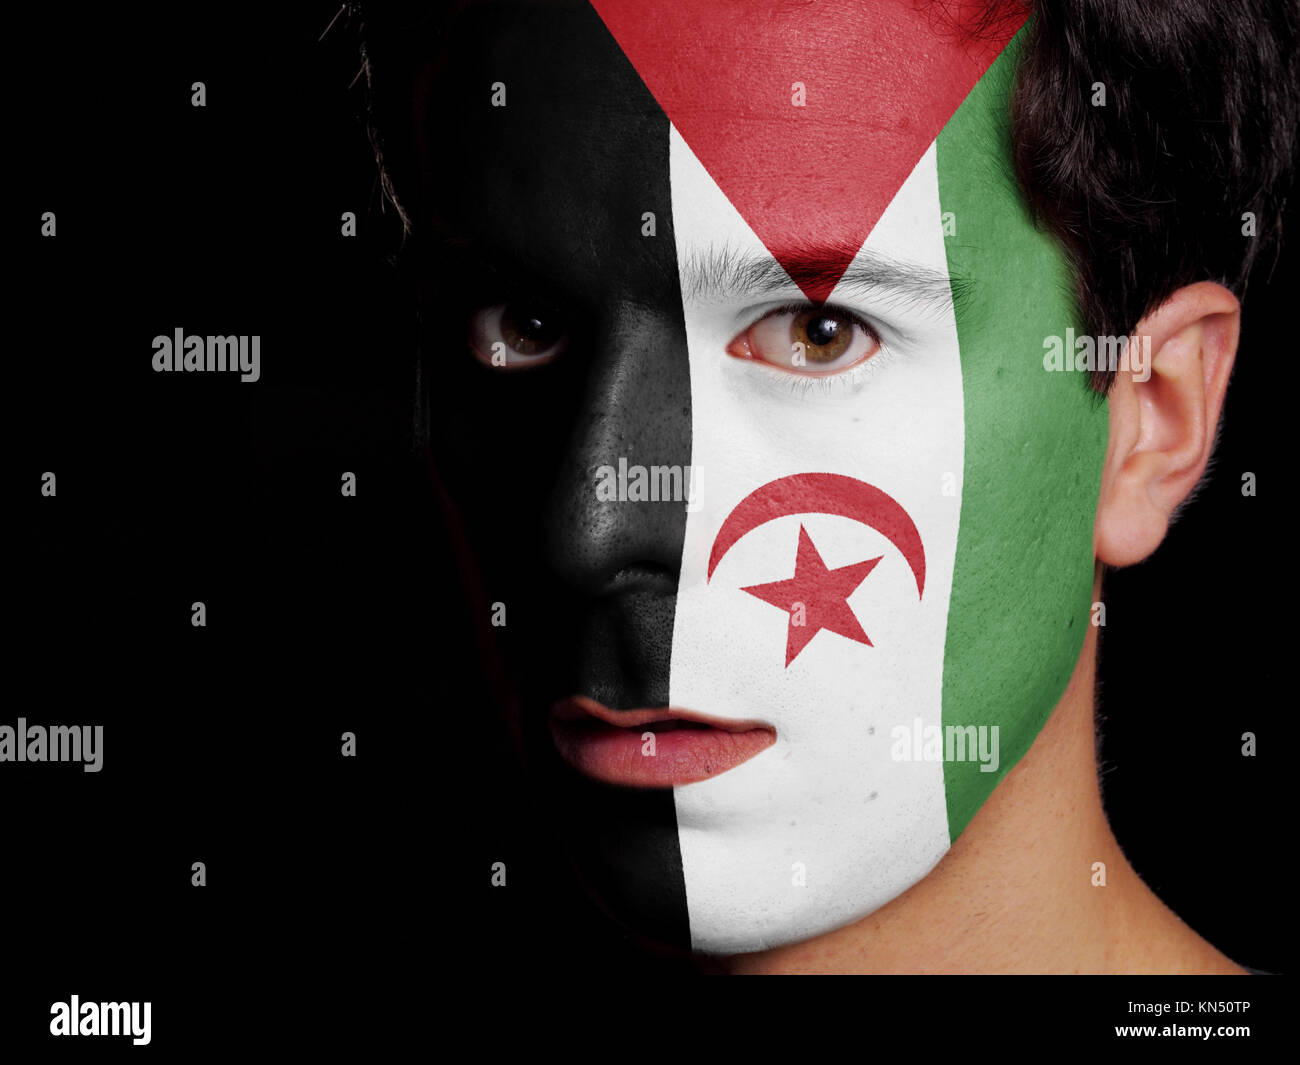 Flag of Sahrawi Arab Democratic Republic Painted on a Face of a Young Man. - Stock Image